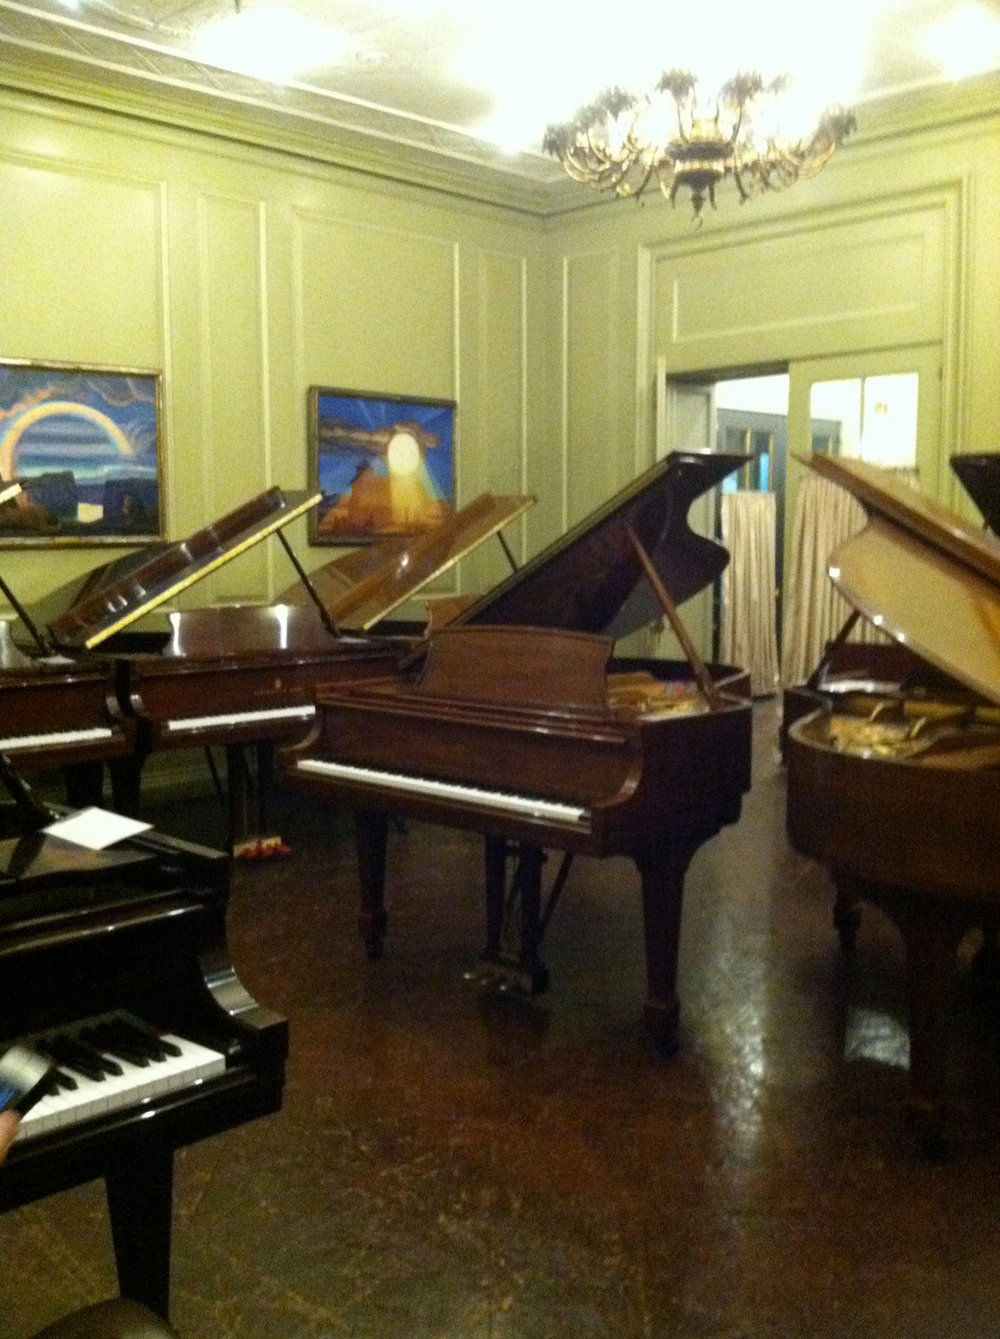 2014 Meet and Greet event at Steinway Hall